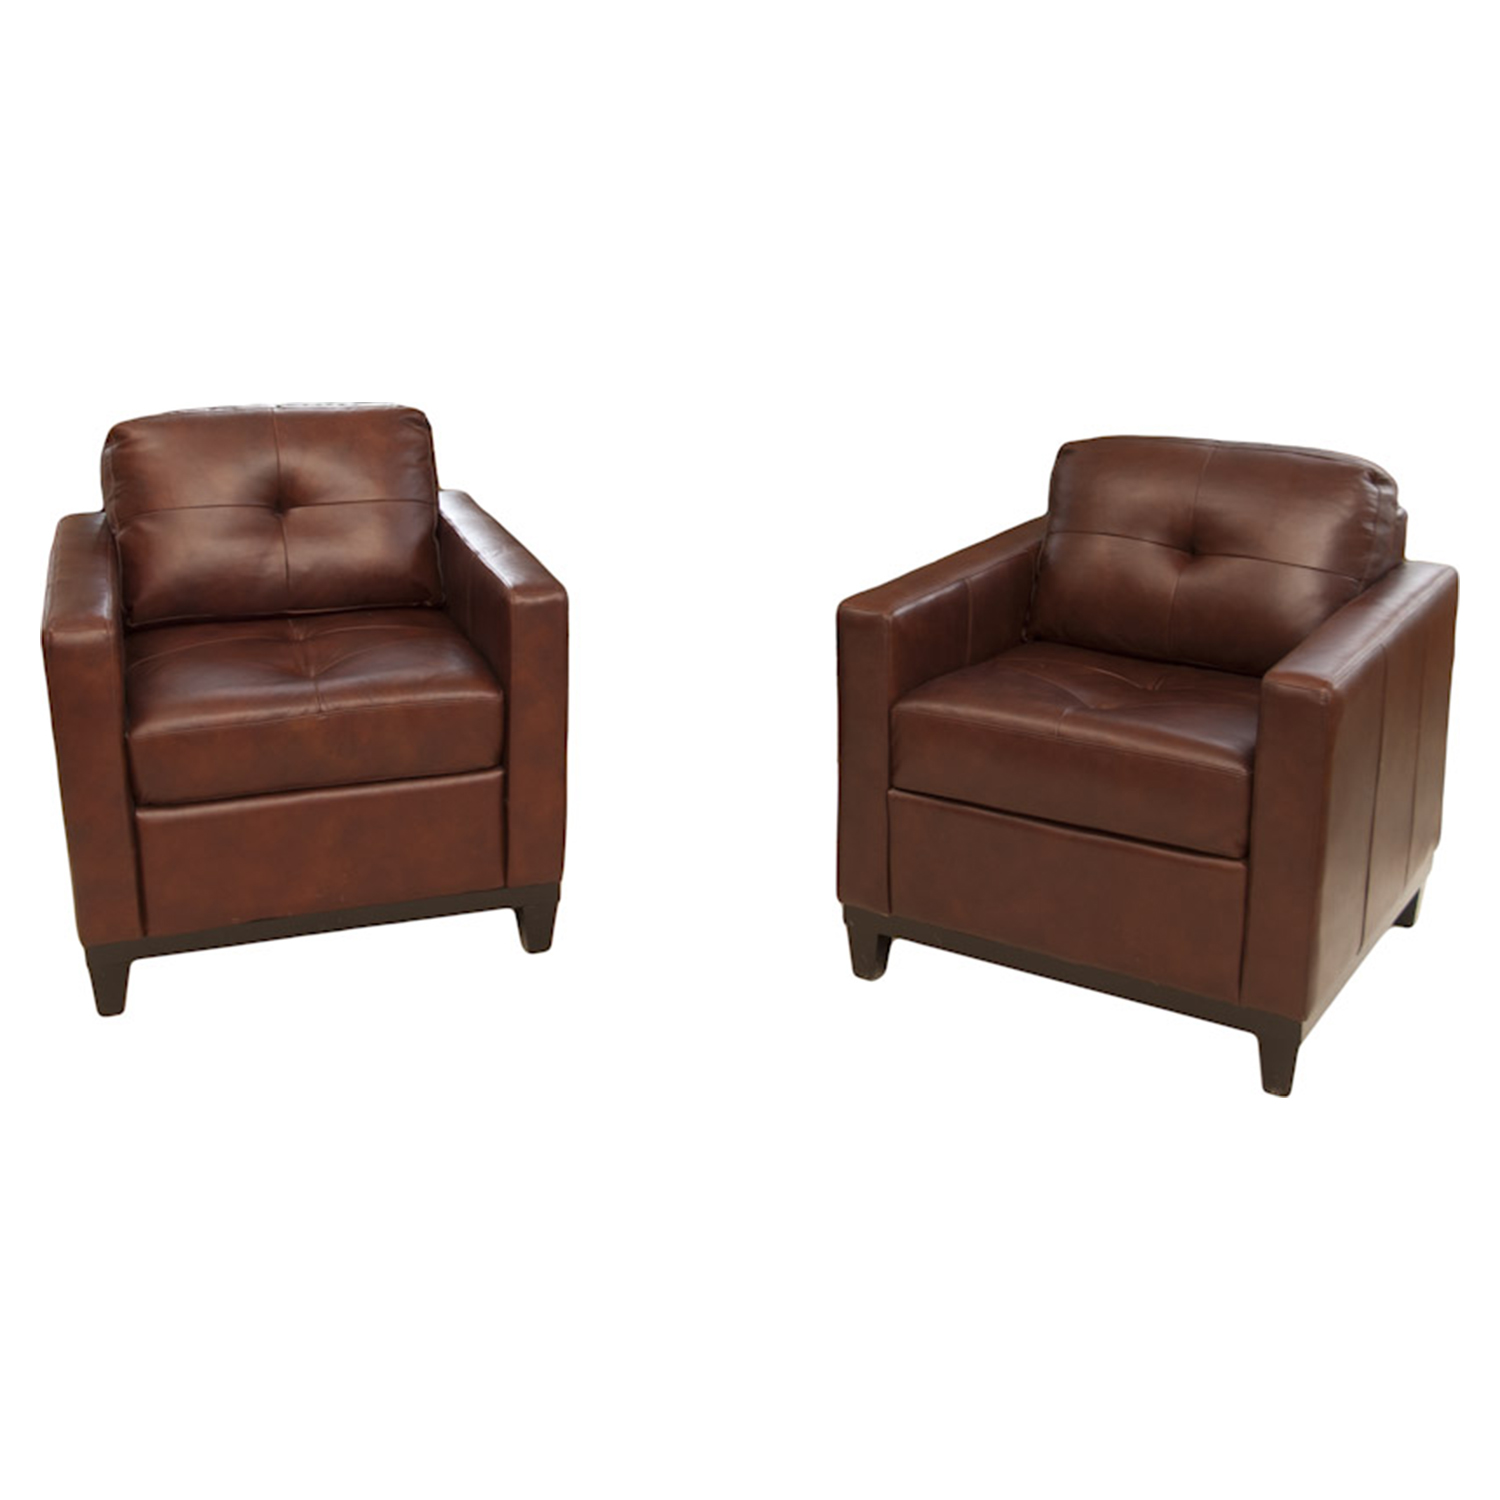 Carlton 2 Pieces Top Grain Leather Accent Chairs - Raisin - ELE-CRL-2PC-SC-SC-RAIS-1